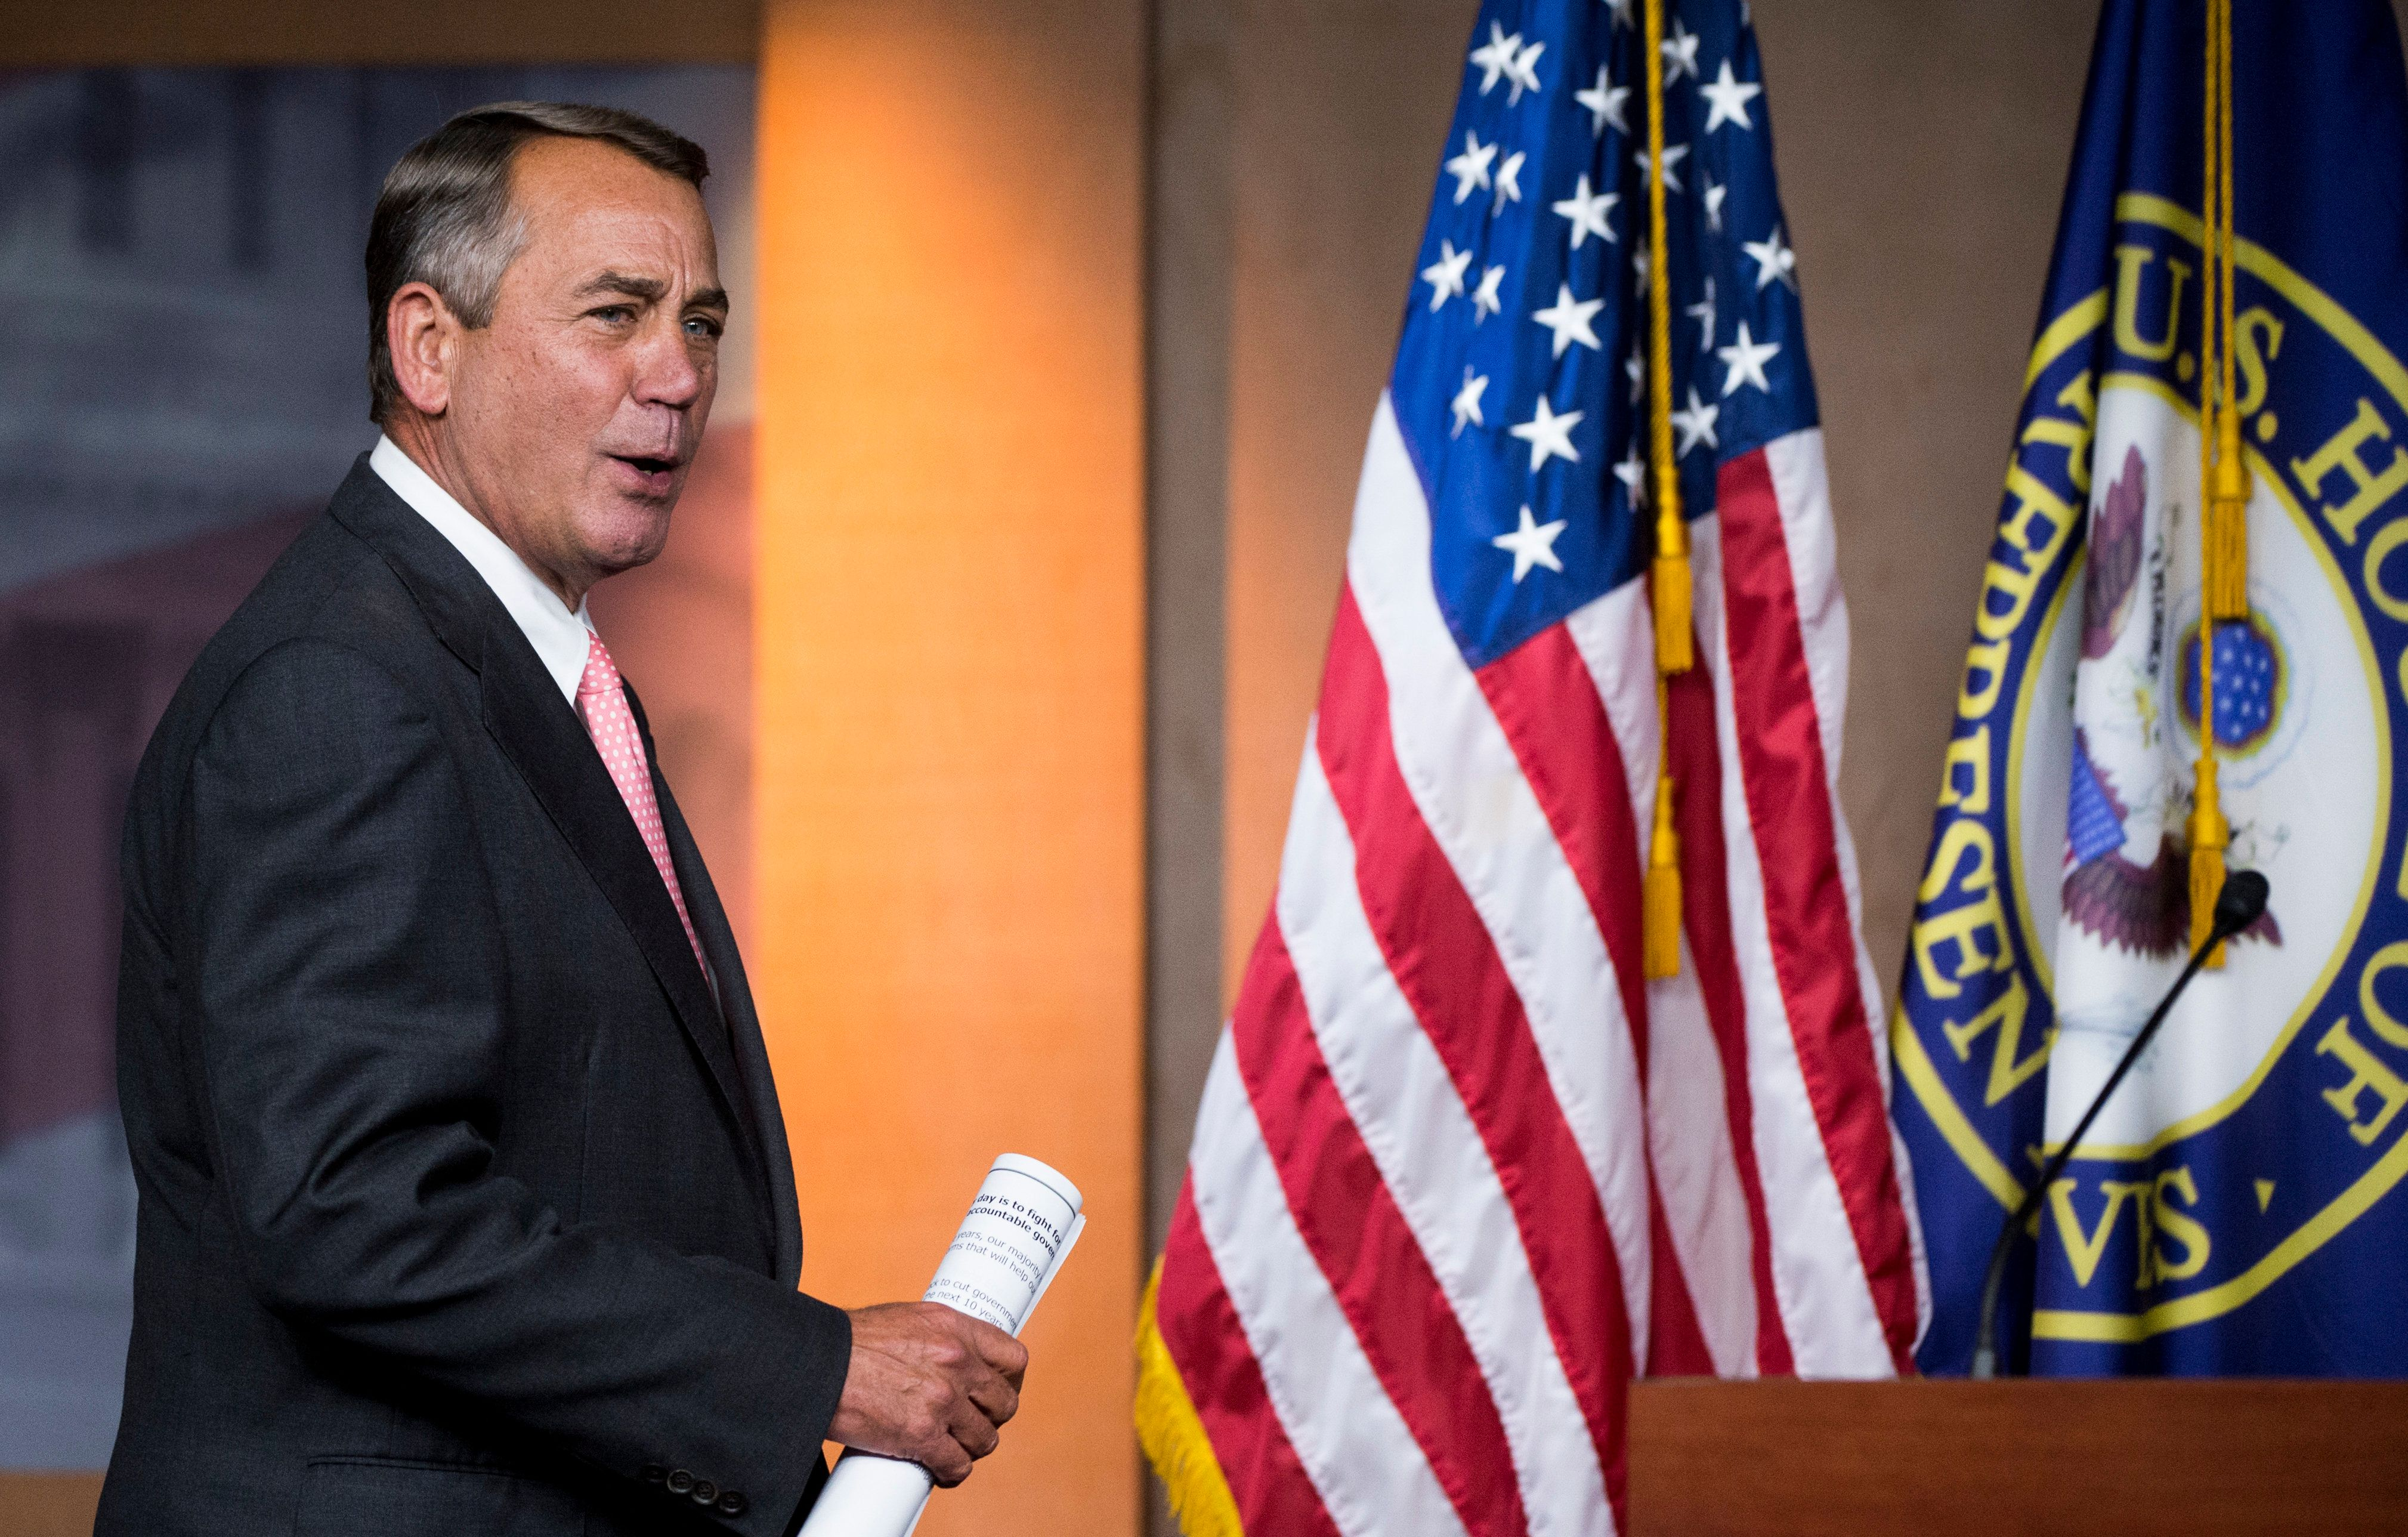 The new budget deal reached between Speaker of the House John Boehner and the White House would raise a little bit ofre